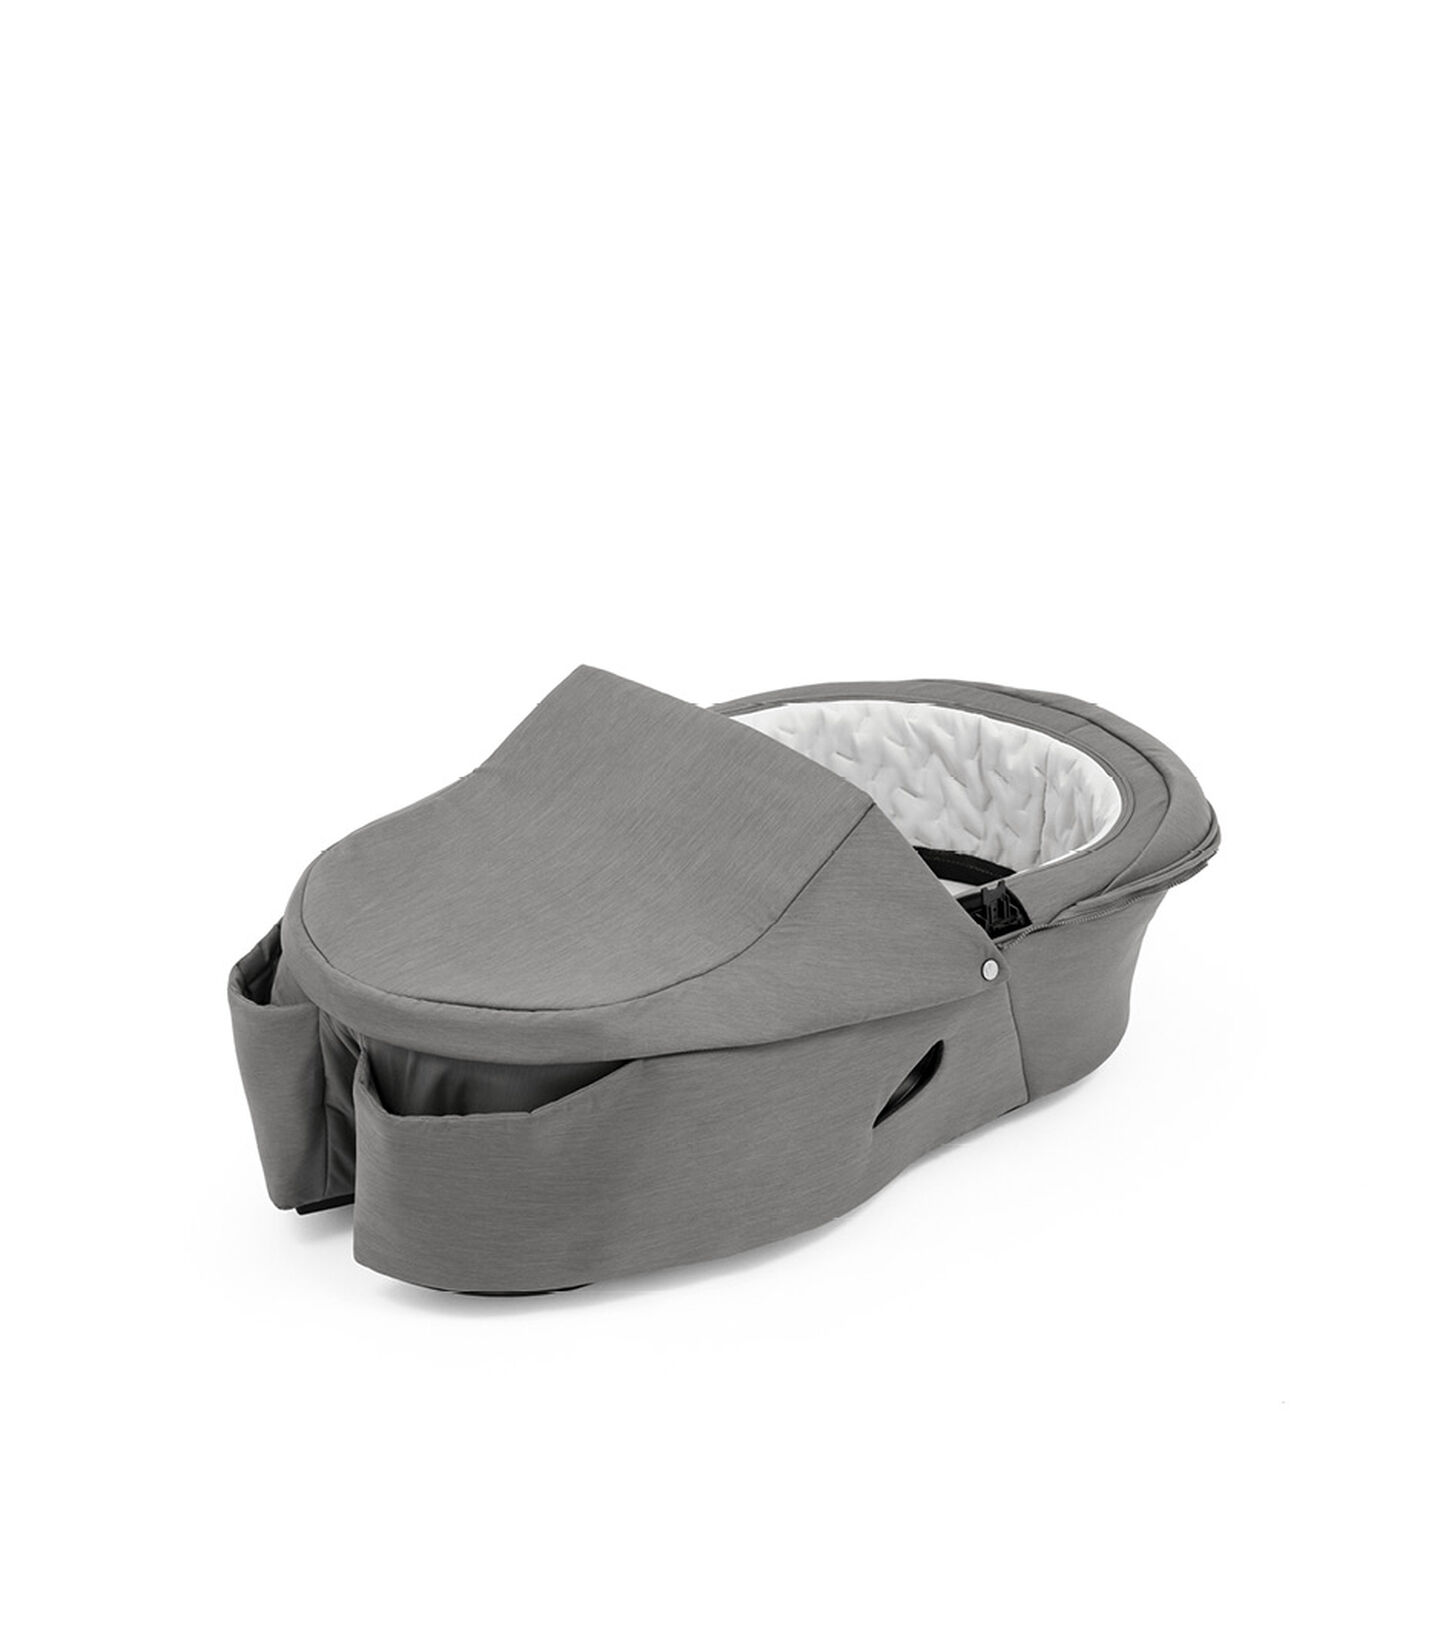 Stokke® Xplory® X Modern Grey Carry Cot, no canopy. view 1